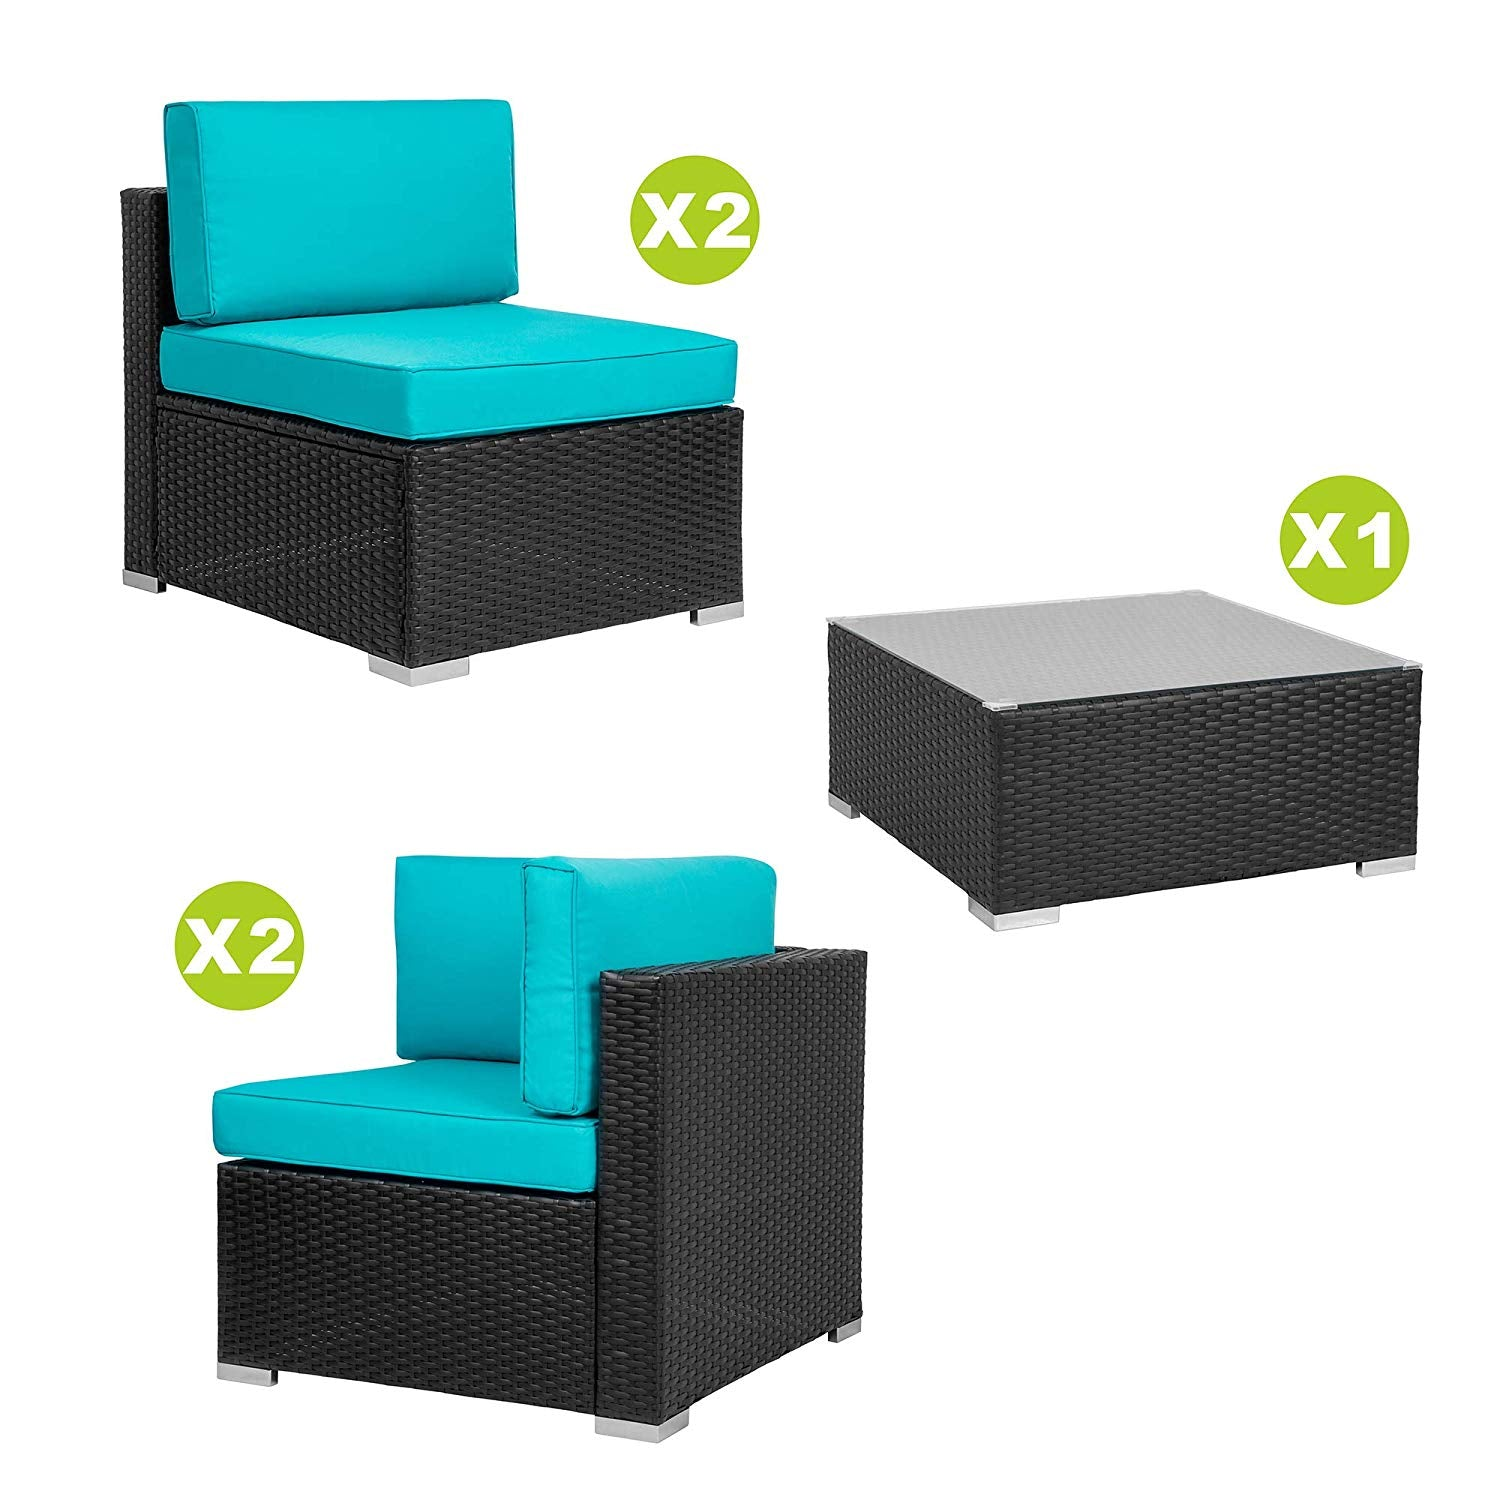 Walsunny 5pcs Patio Outdoor Furniture Sets,All-Weather Rattan Sectional Sofa with Tea Table&Washable Couch Cushions (Black Rattan) (Blue)